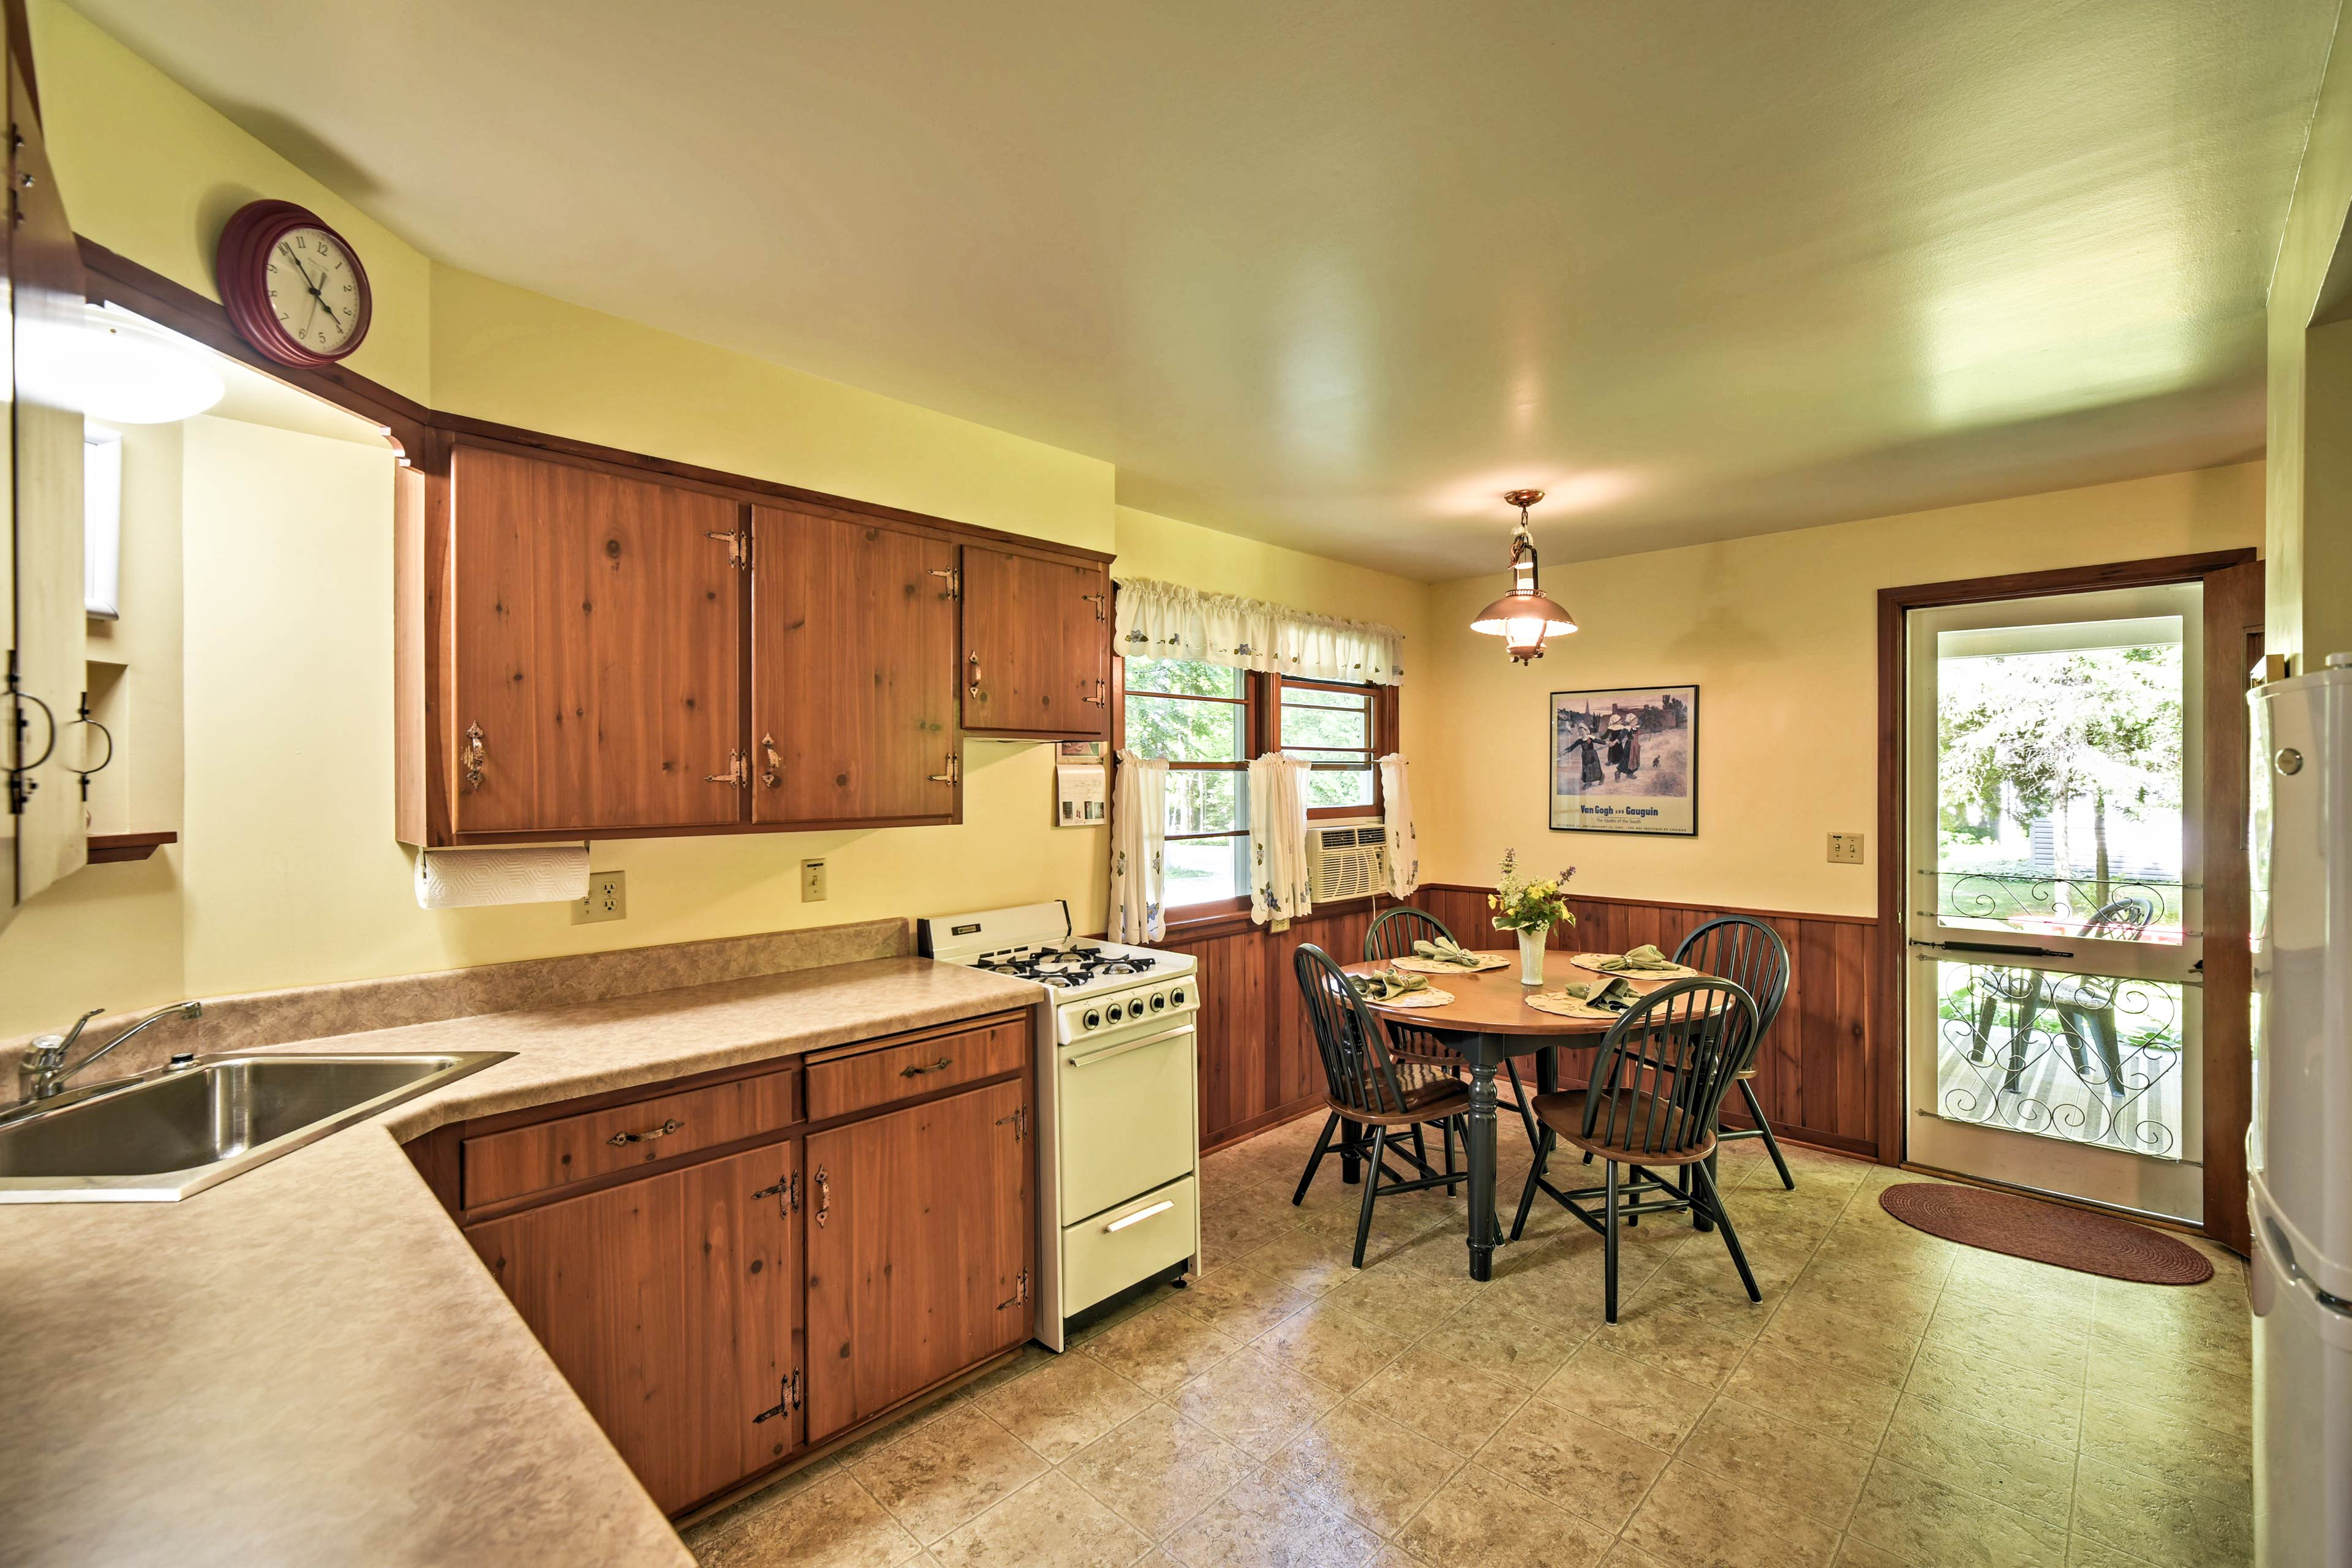 There's even a cozy breakfast nook for at-home meals.